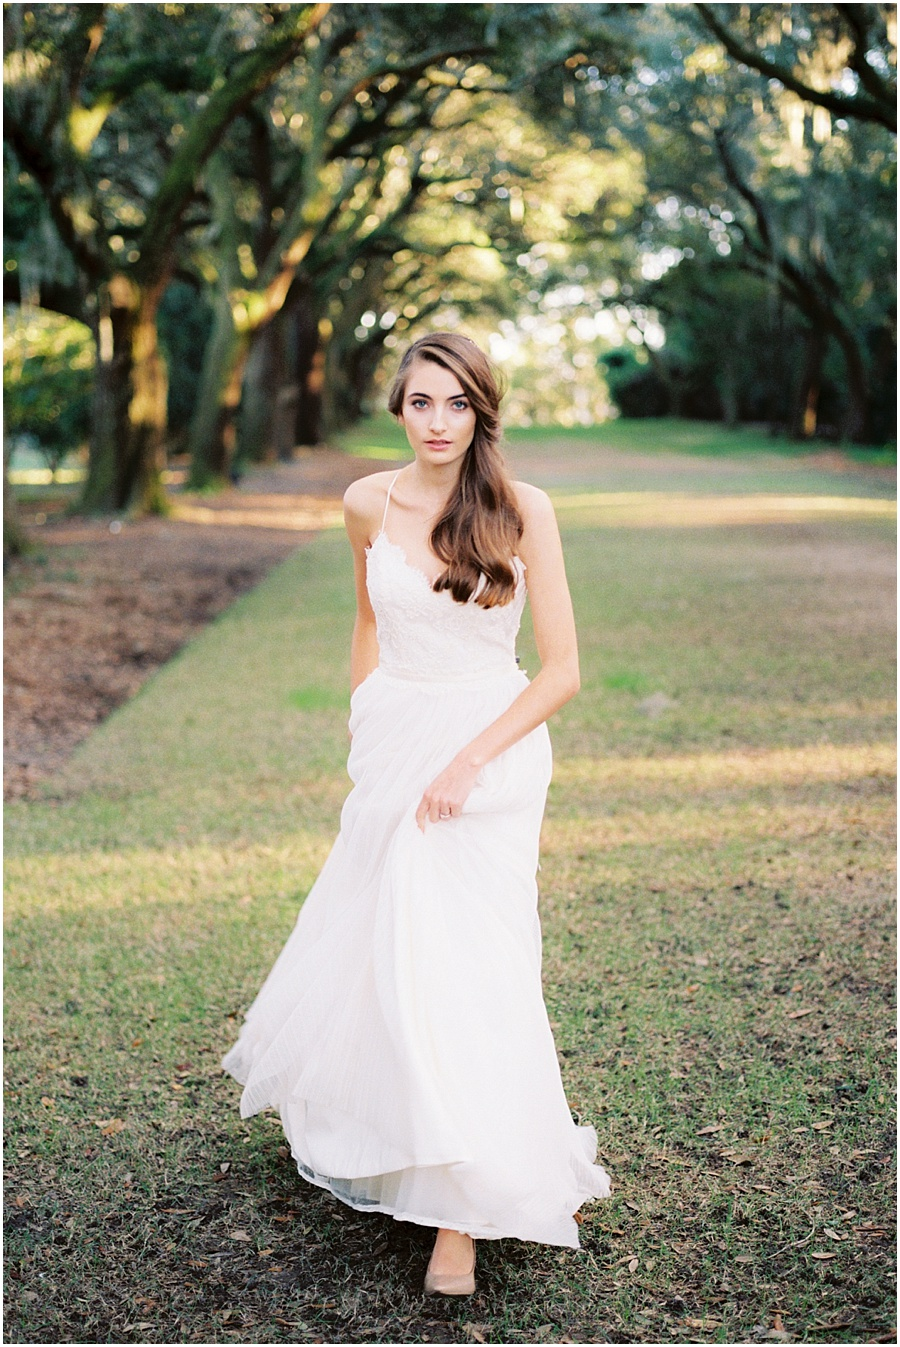 Charleston styled shoot collaboration with Heather Rowland Photography and Lindsey Zamora.